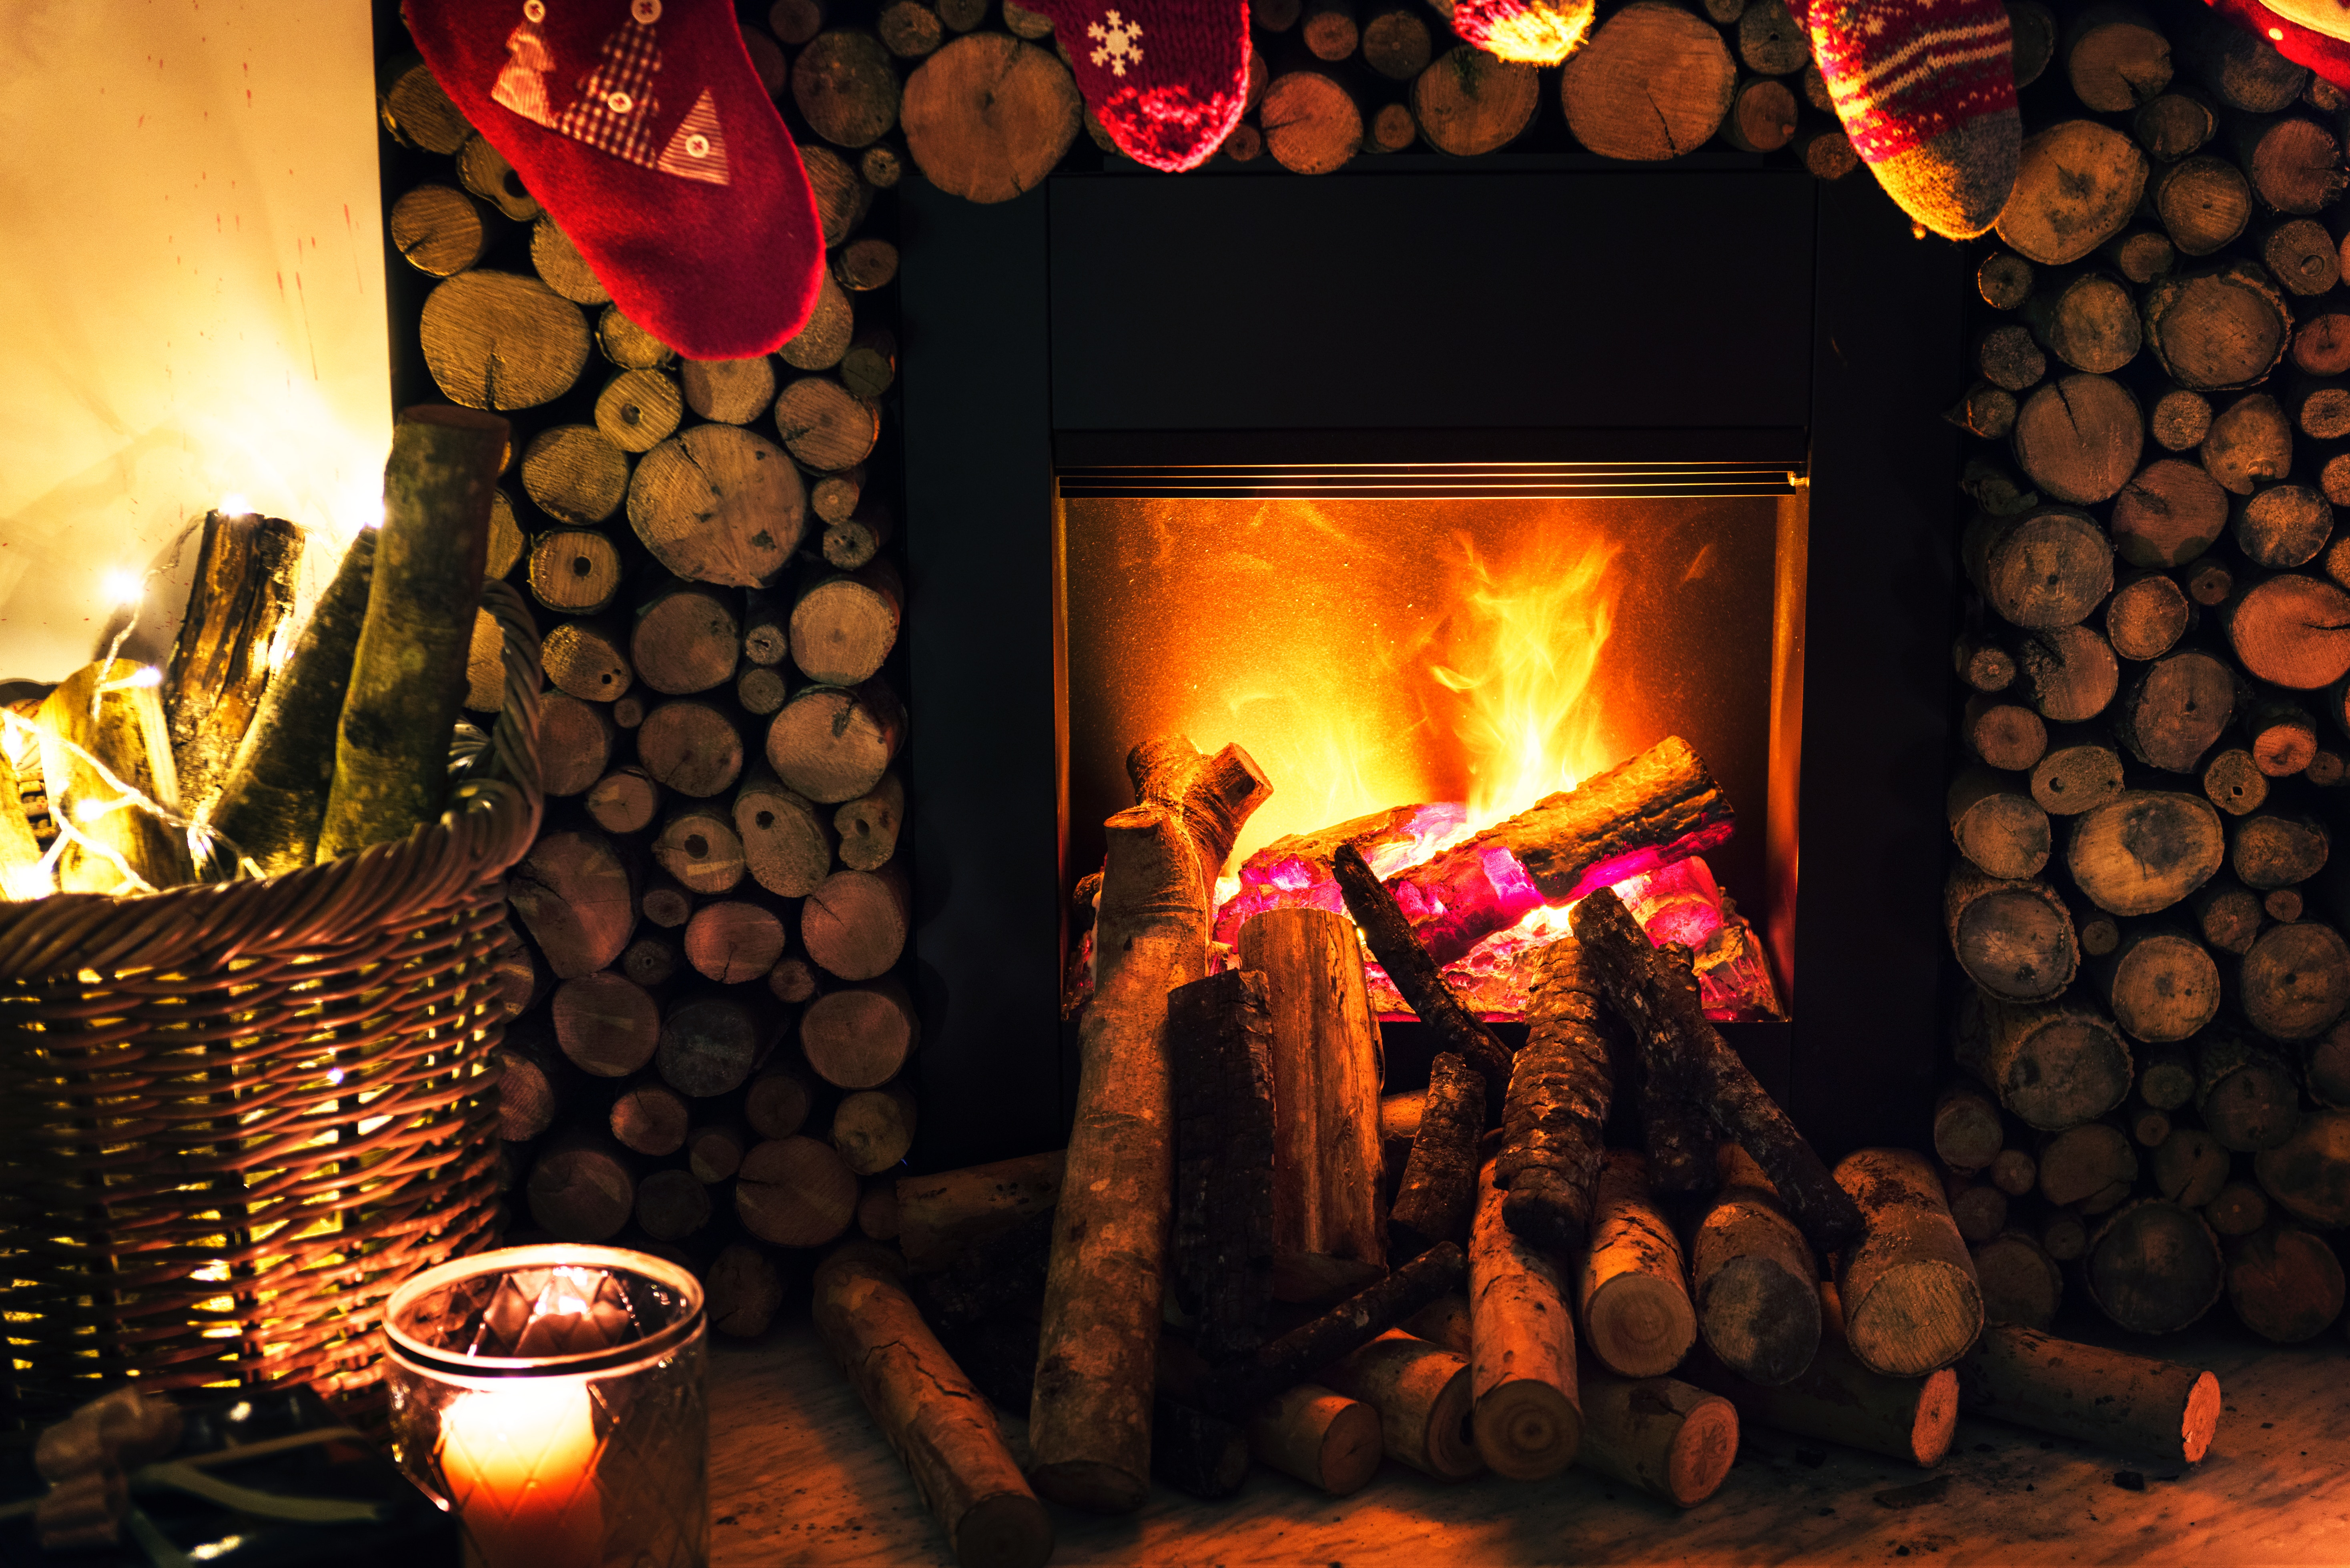 Fire in fireplace with Christmas stockings hung from mantle